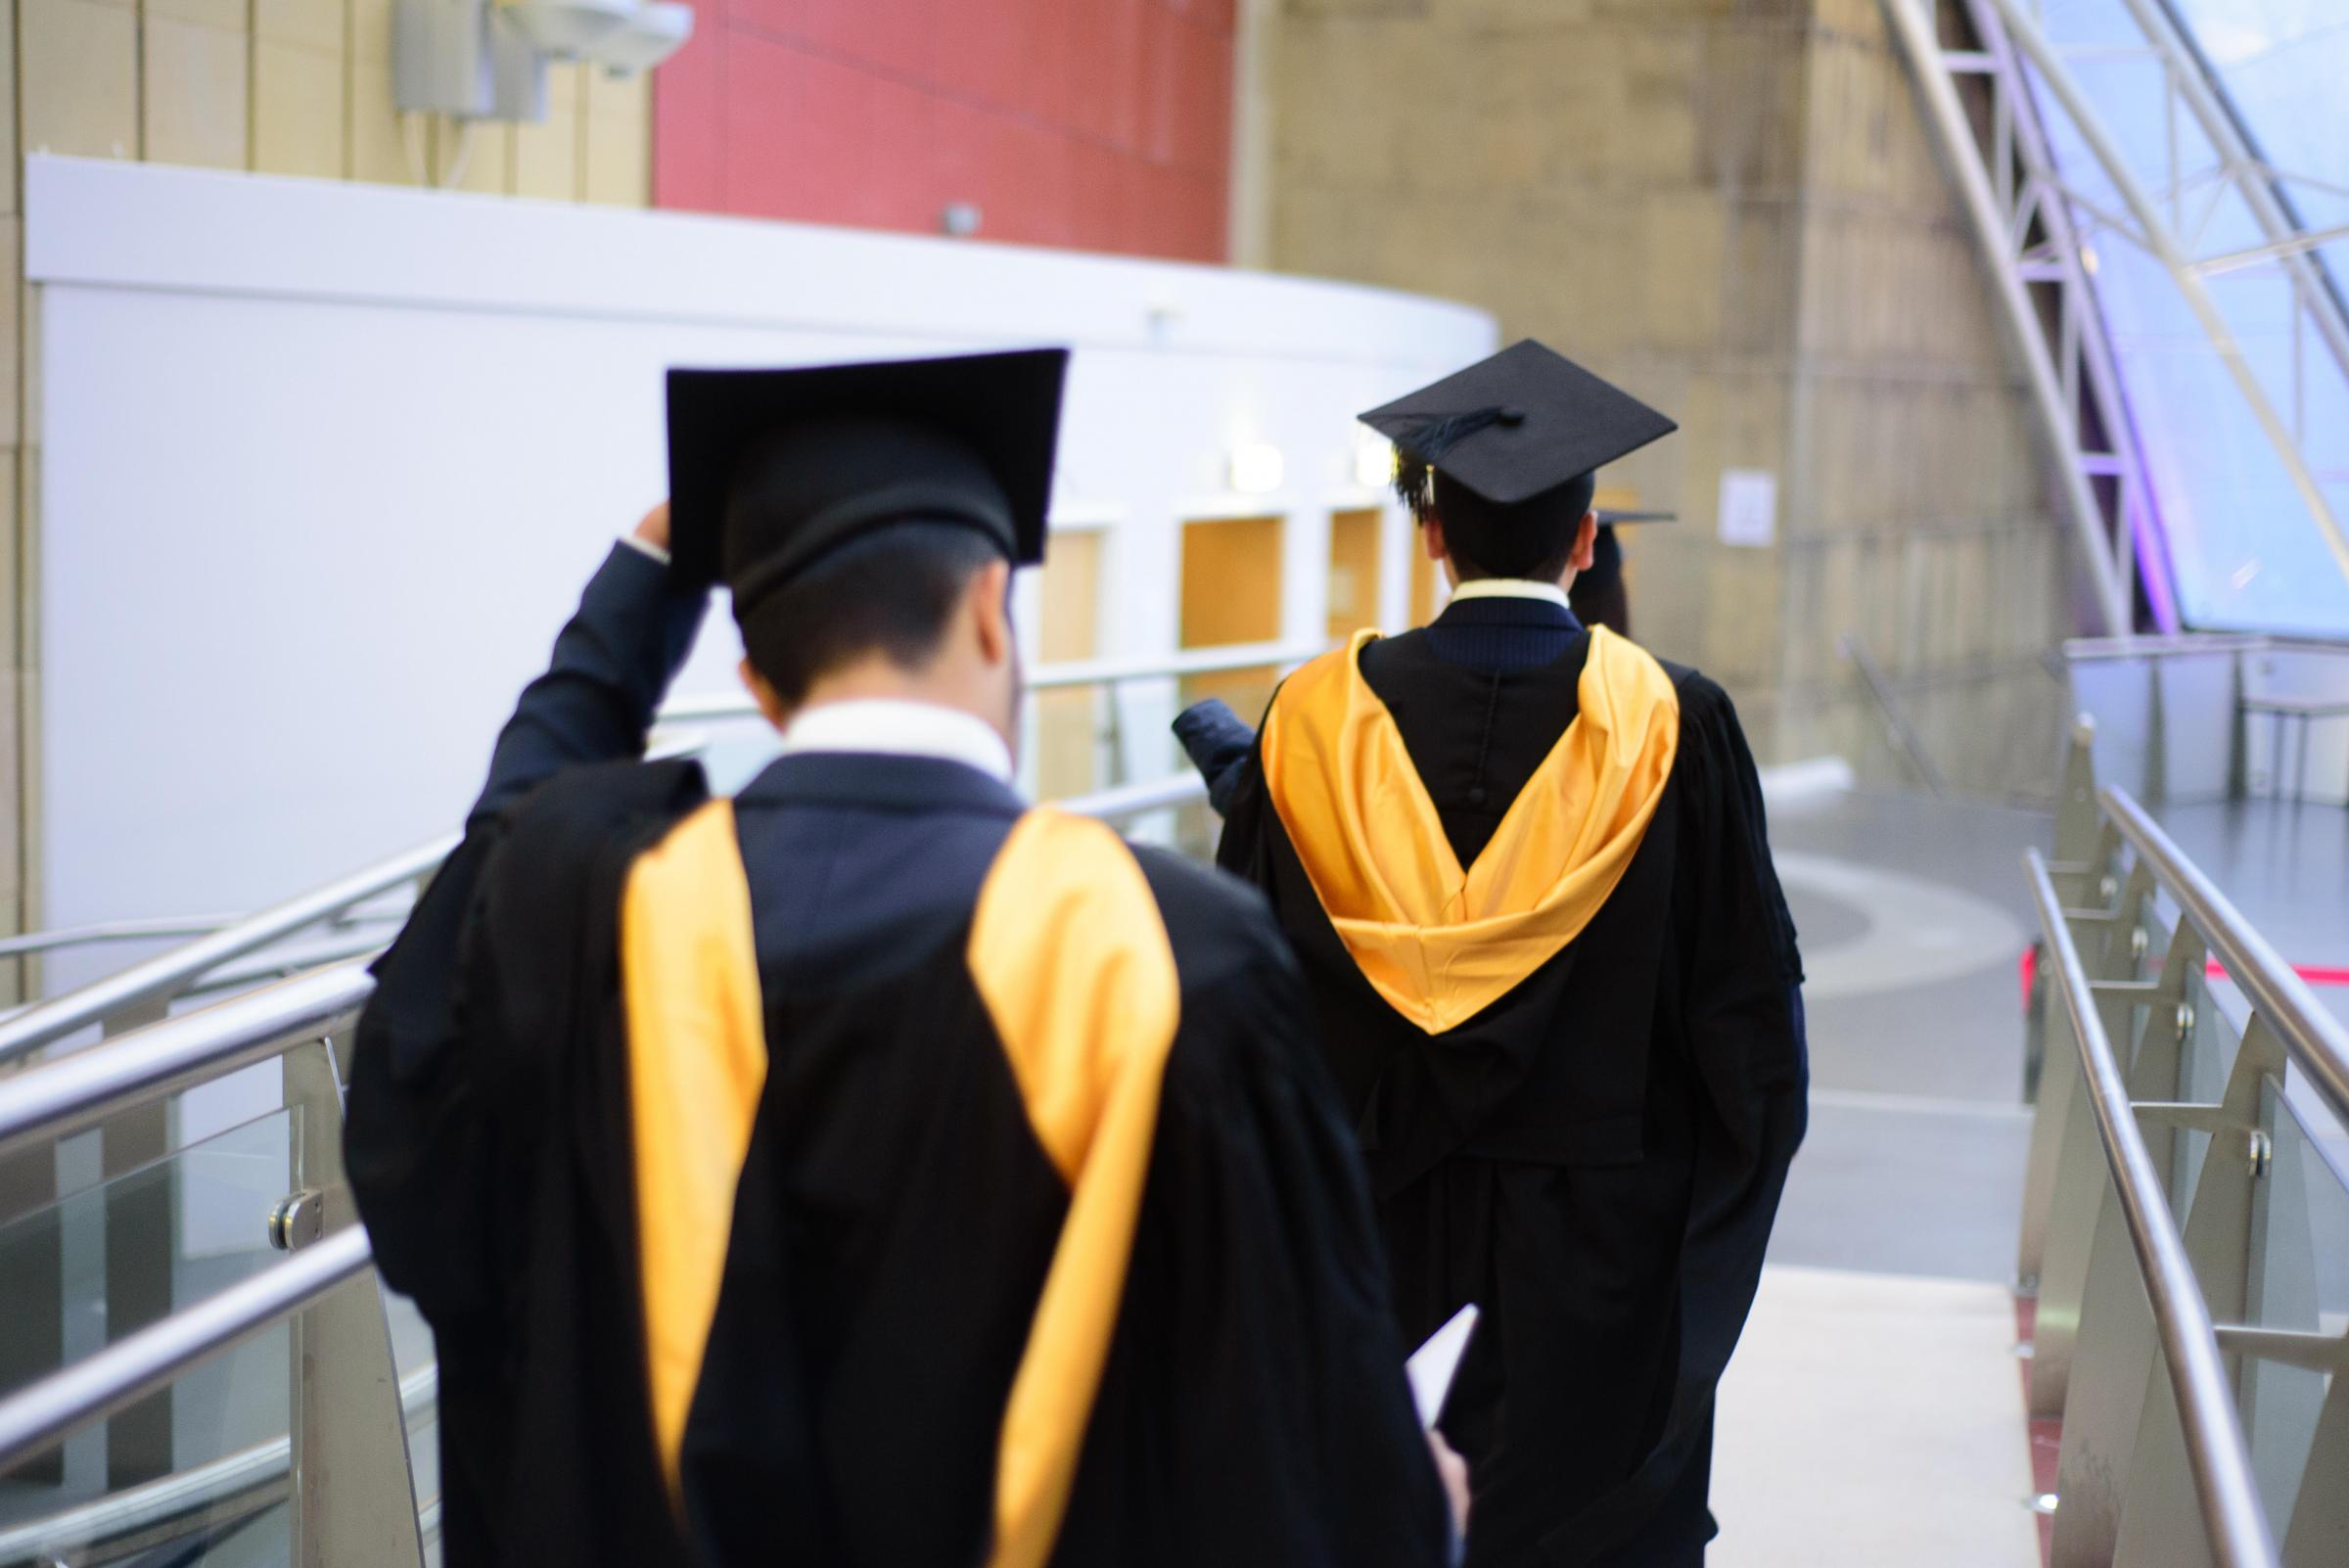 Graduates at the University of Bradford